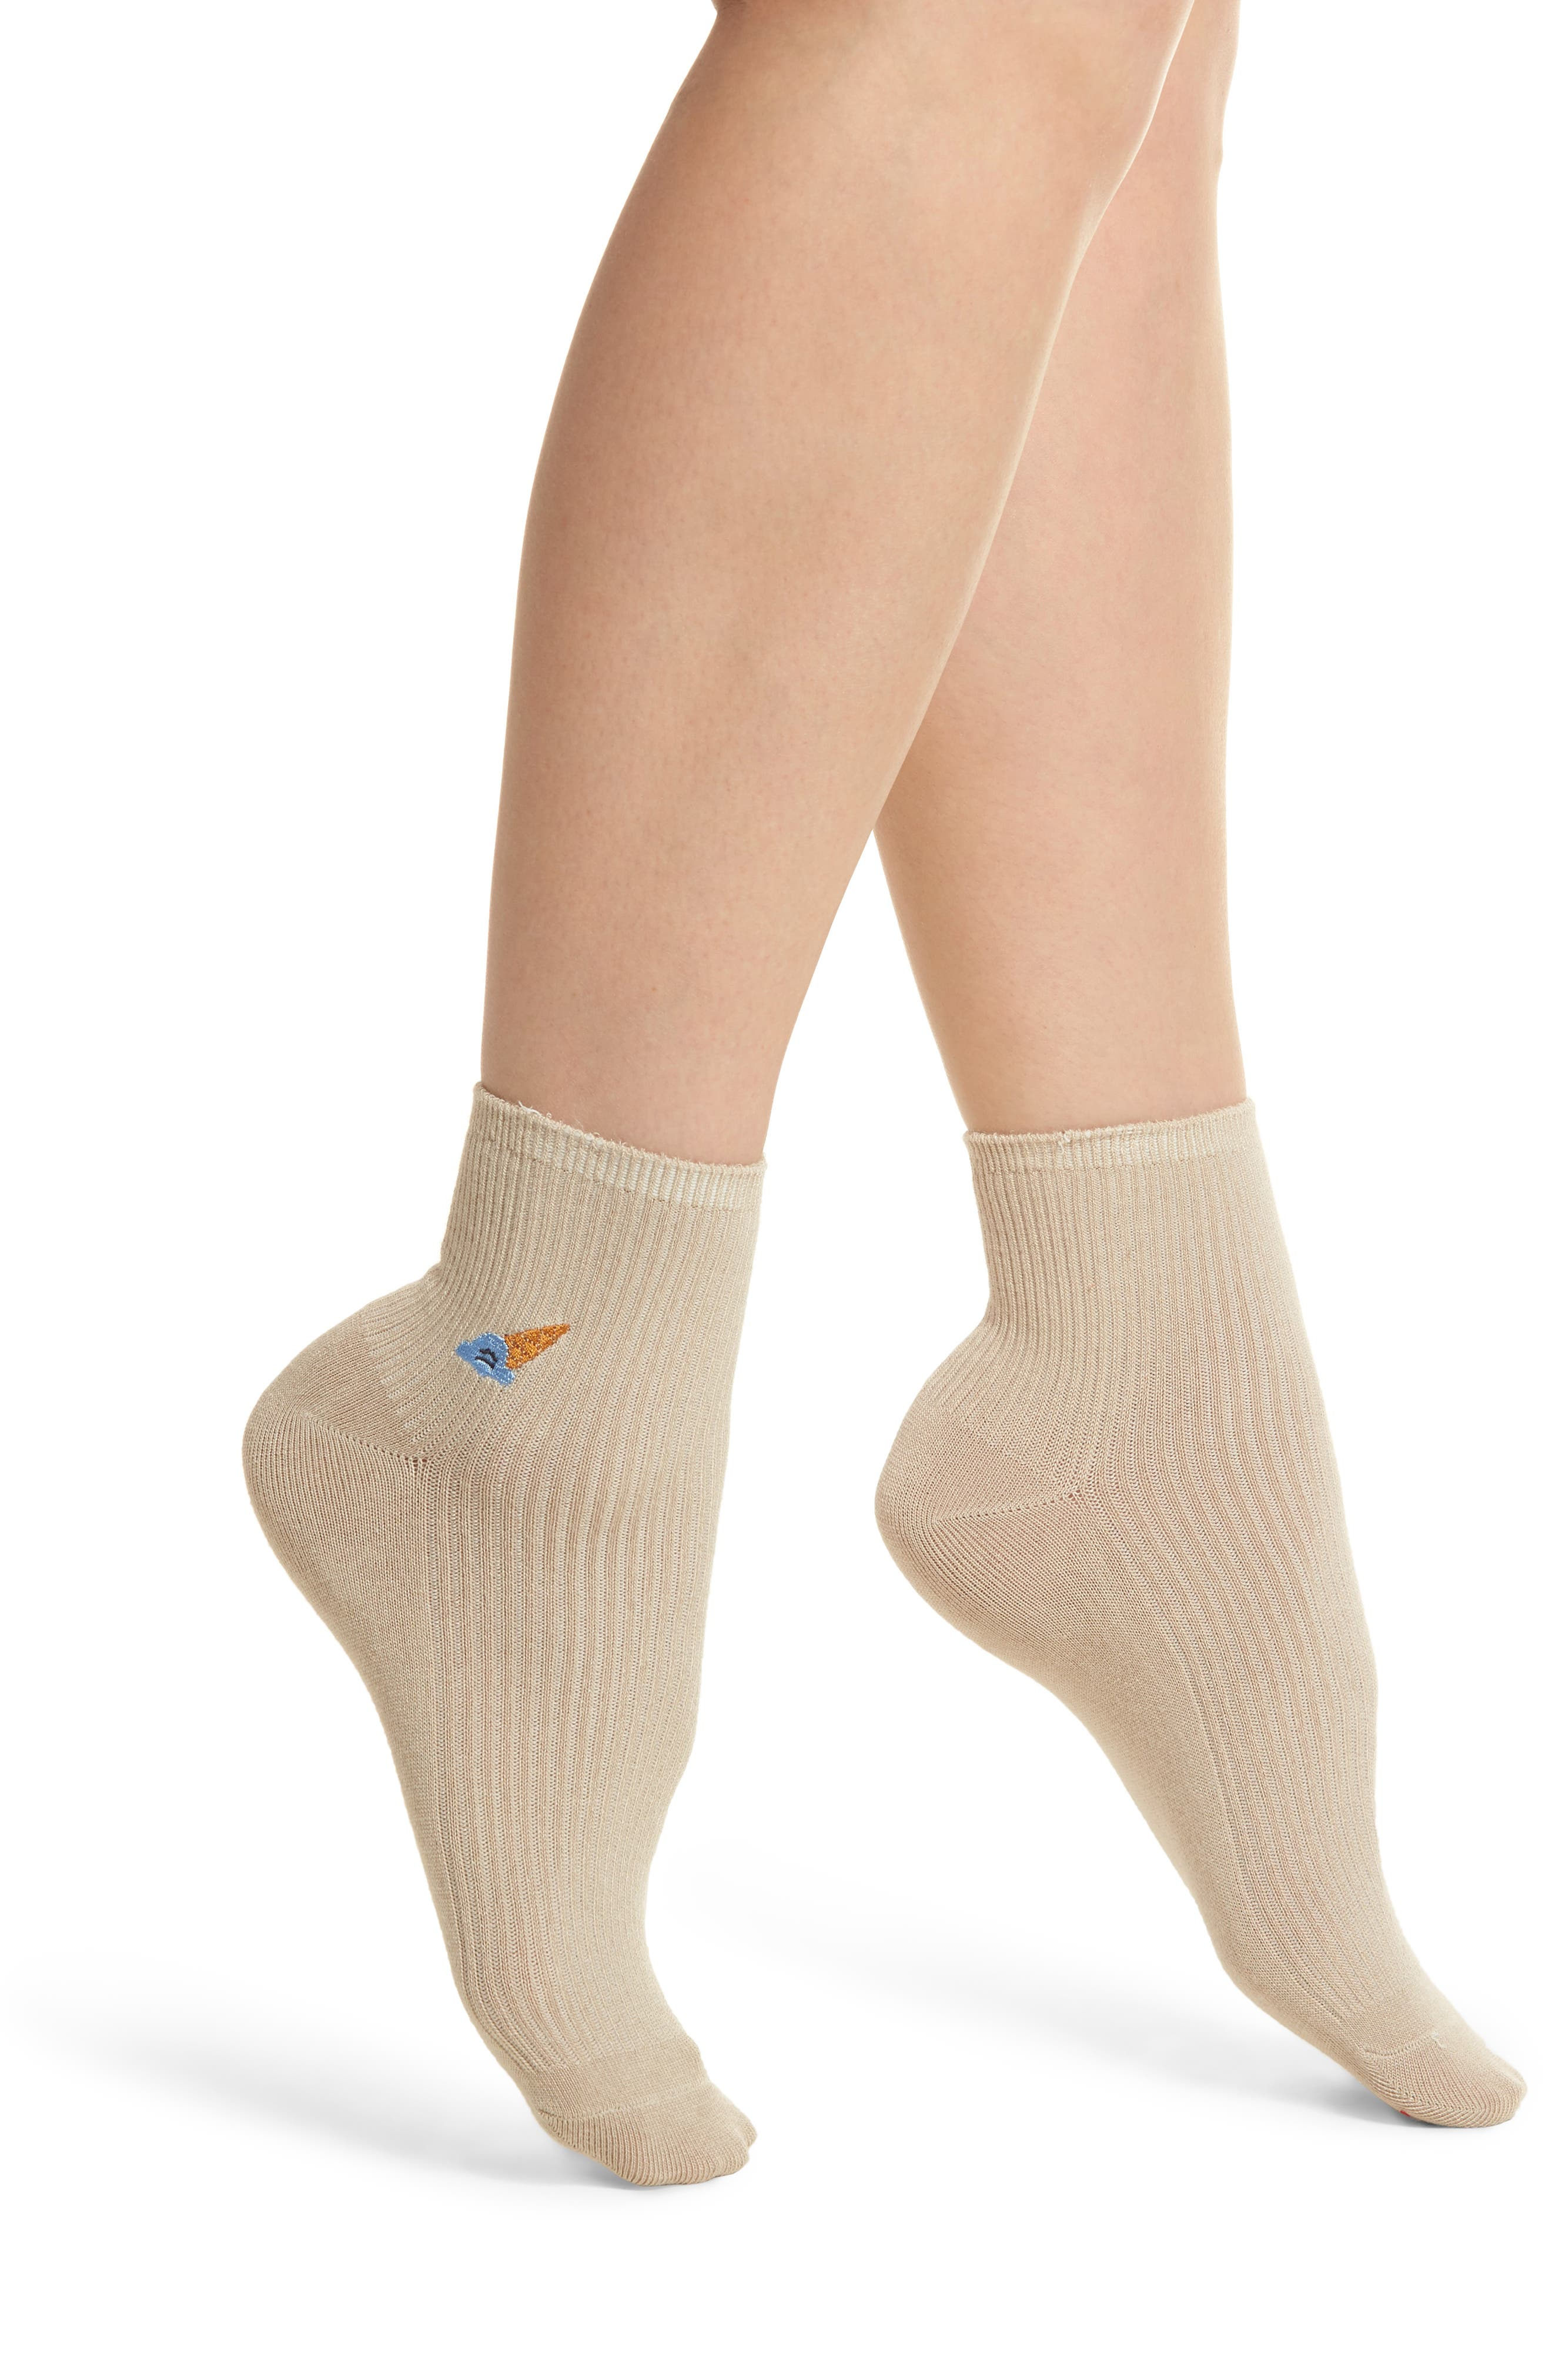 Coney Ankle Socks,                         Main,                         color, 250